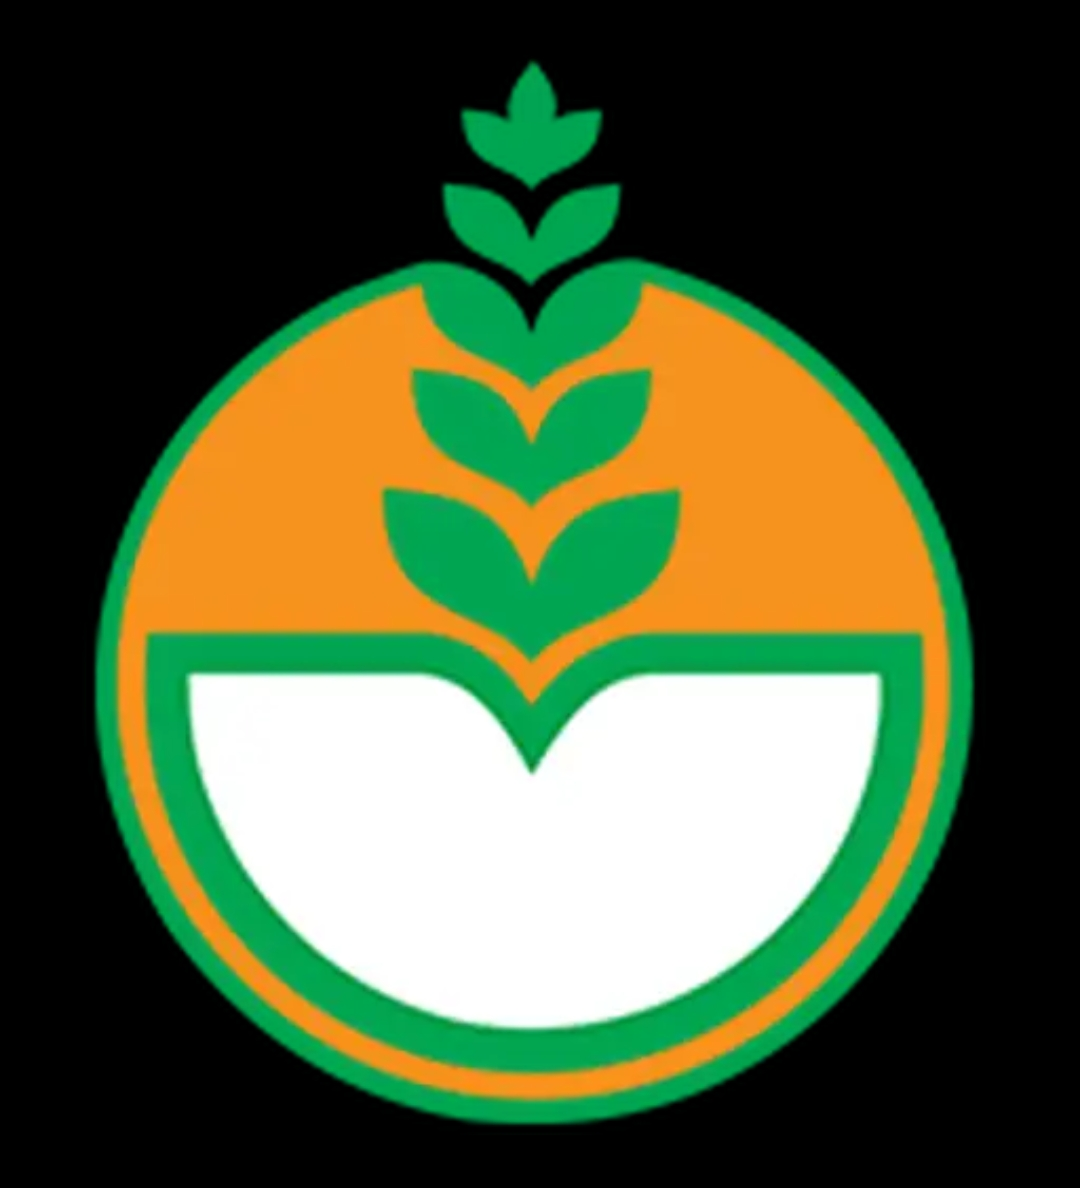 Mahadhan app is one-stop solution for all farming needs.